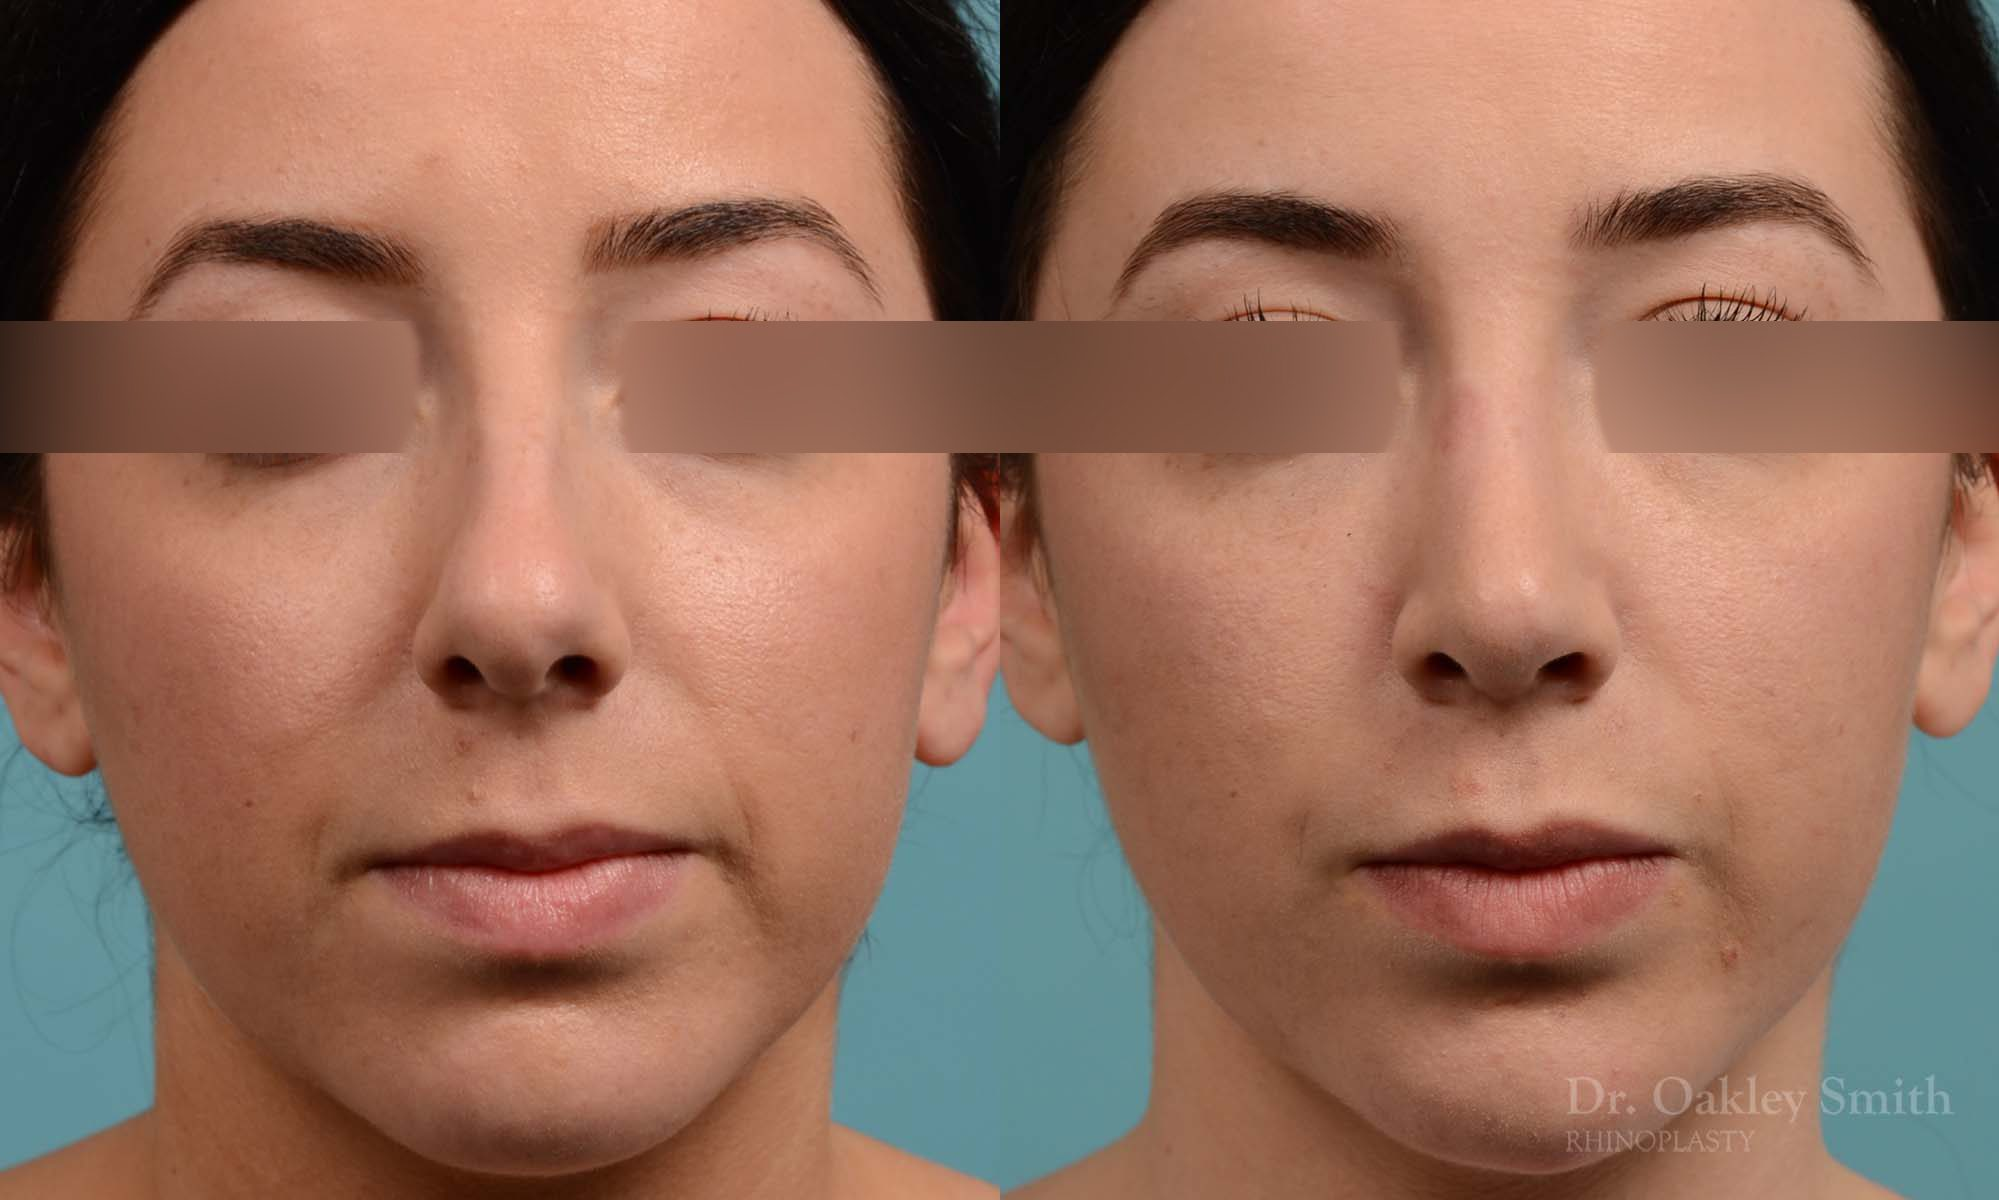 Rhinoplasty to reduce the overall size of her nose